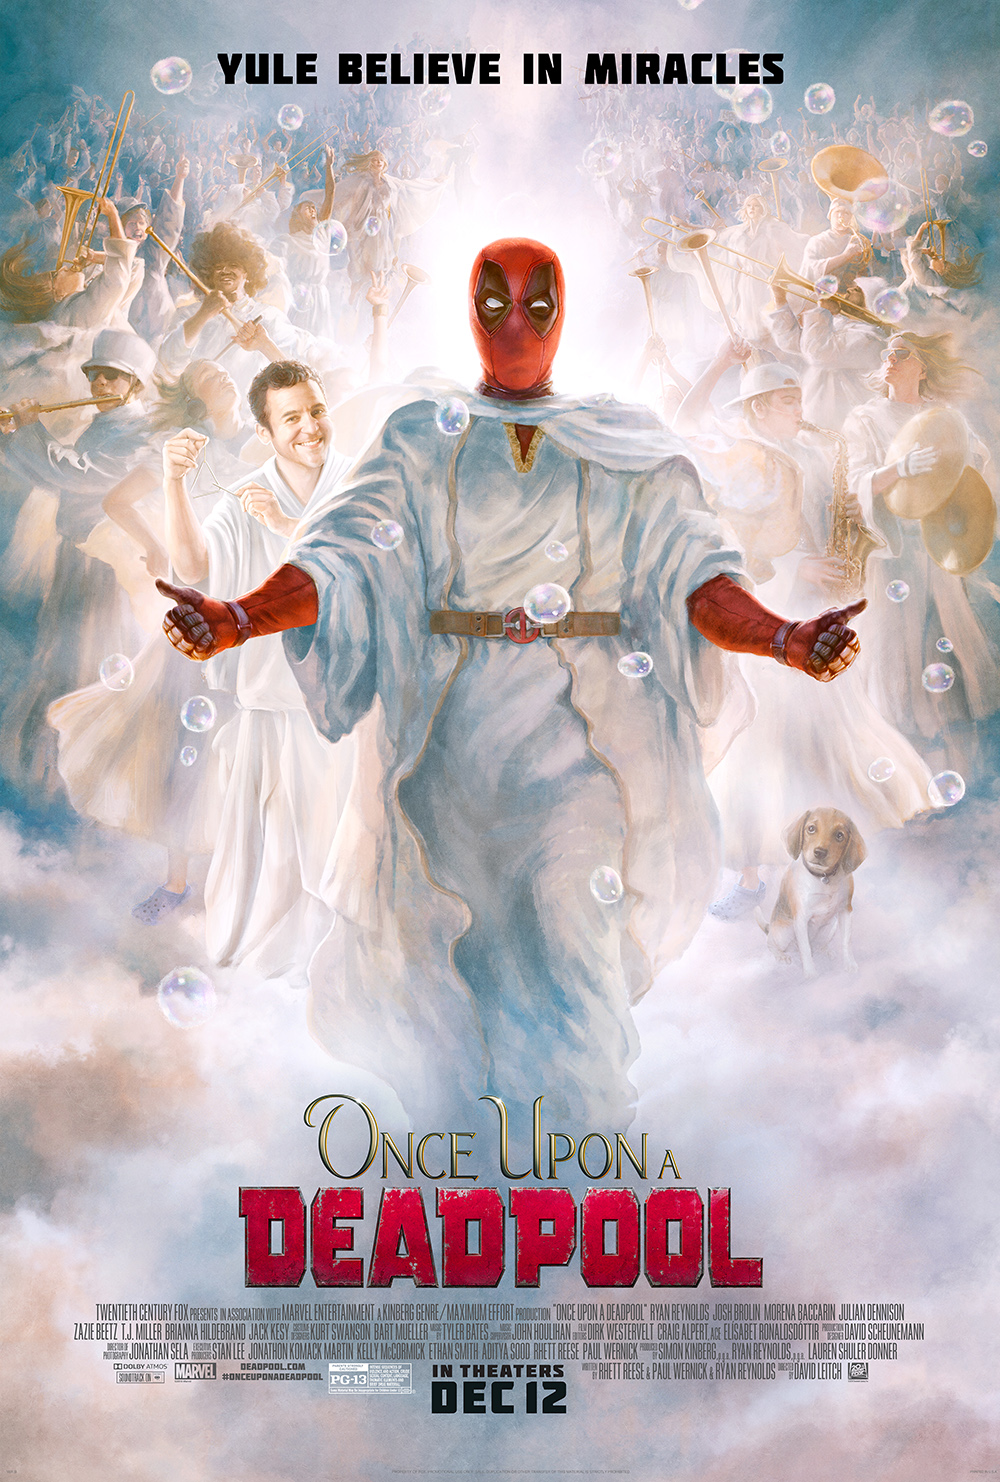 Christmas In Connecticut Dvd.Once Upon A Deadpool Has Fun With Christmas But Is It